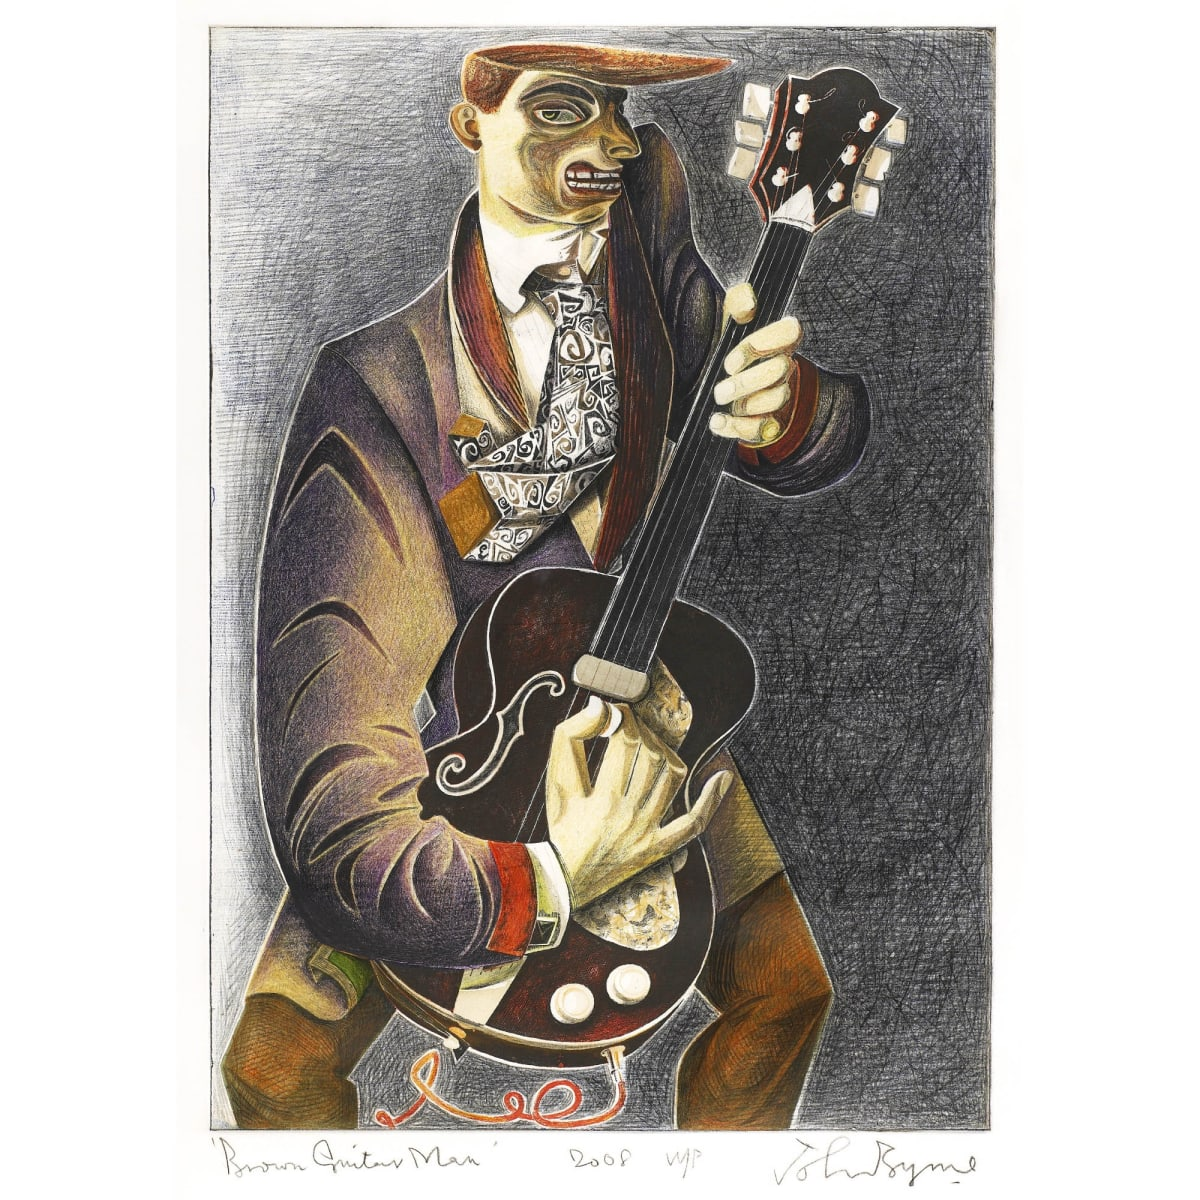 John Byrne Brown Guitar Man signed, titled and dated 2008 in pencil to margin hand coloured lithograph 26 1/2 x 18 1/2 inches